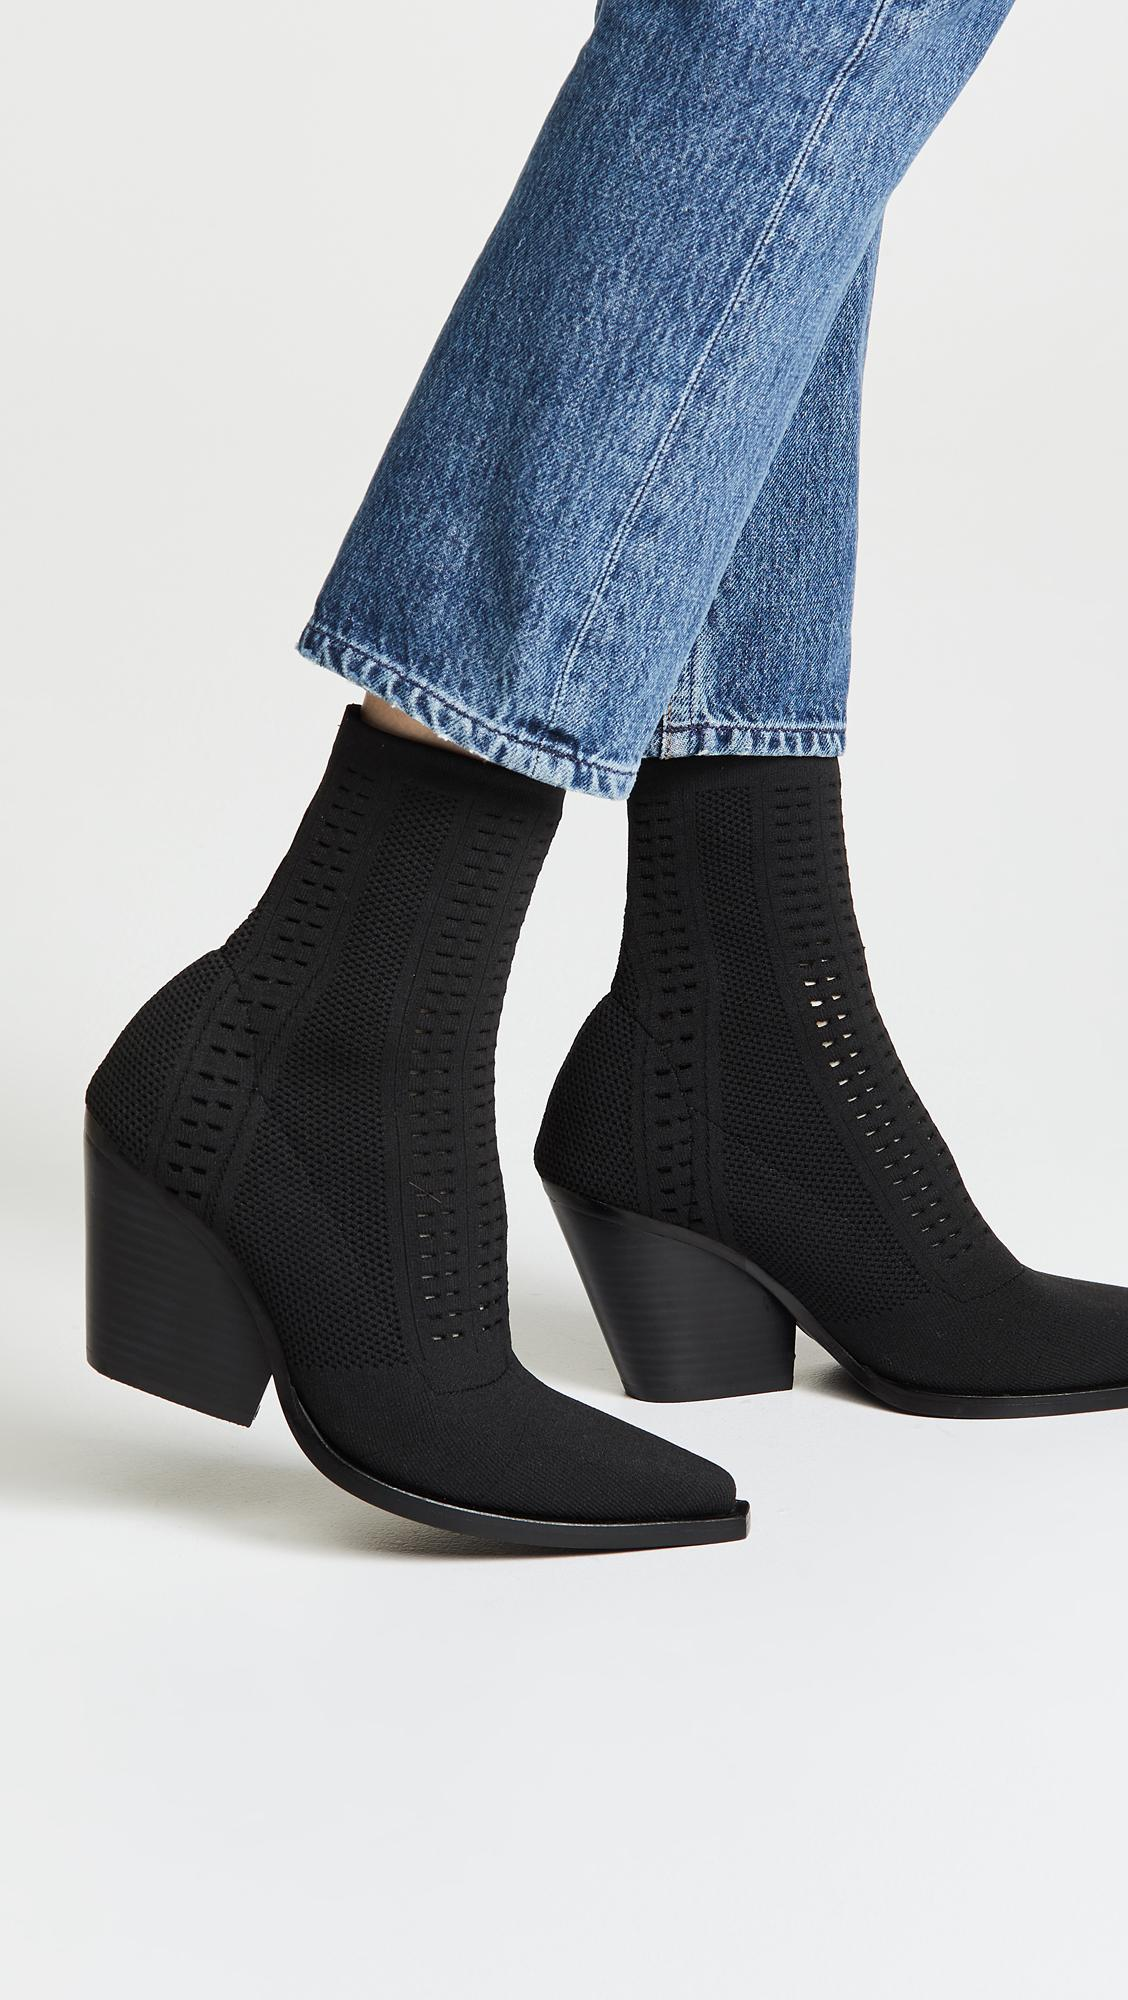 c1013b1ecf180 Lyst - Jeffrey Campbell Walton Point Toe Boots in Black